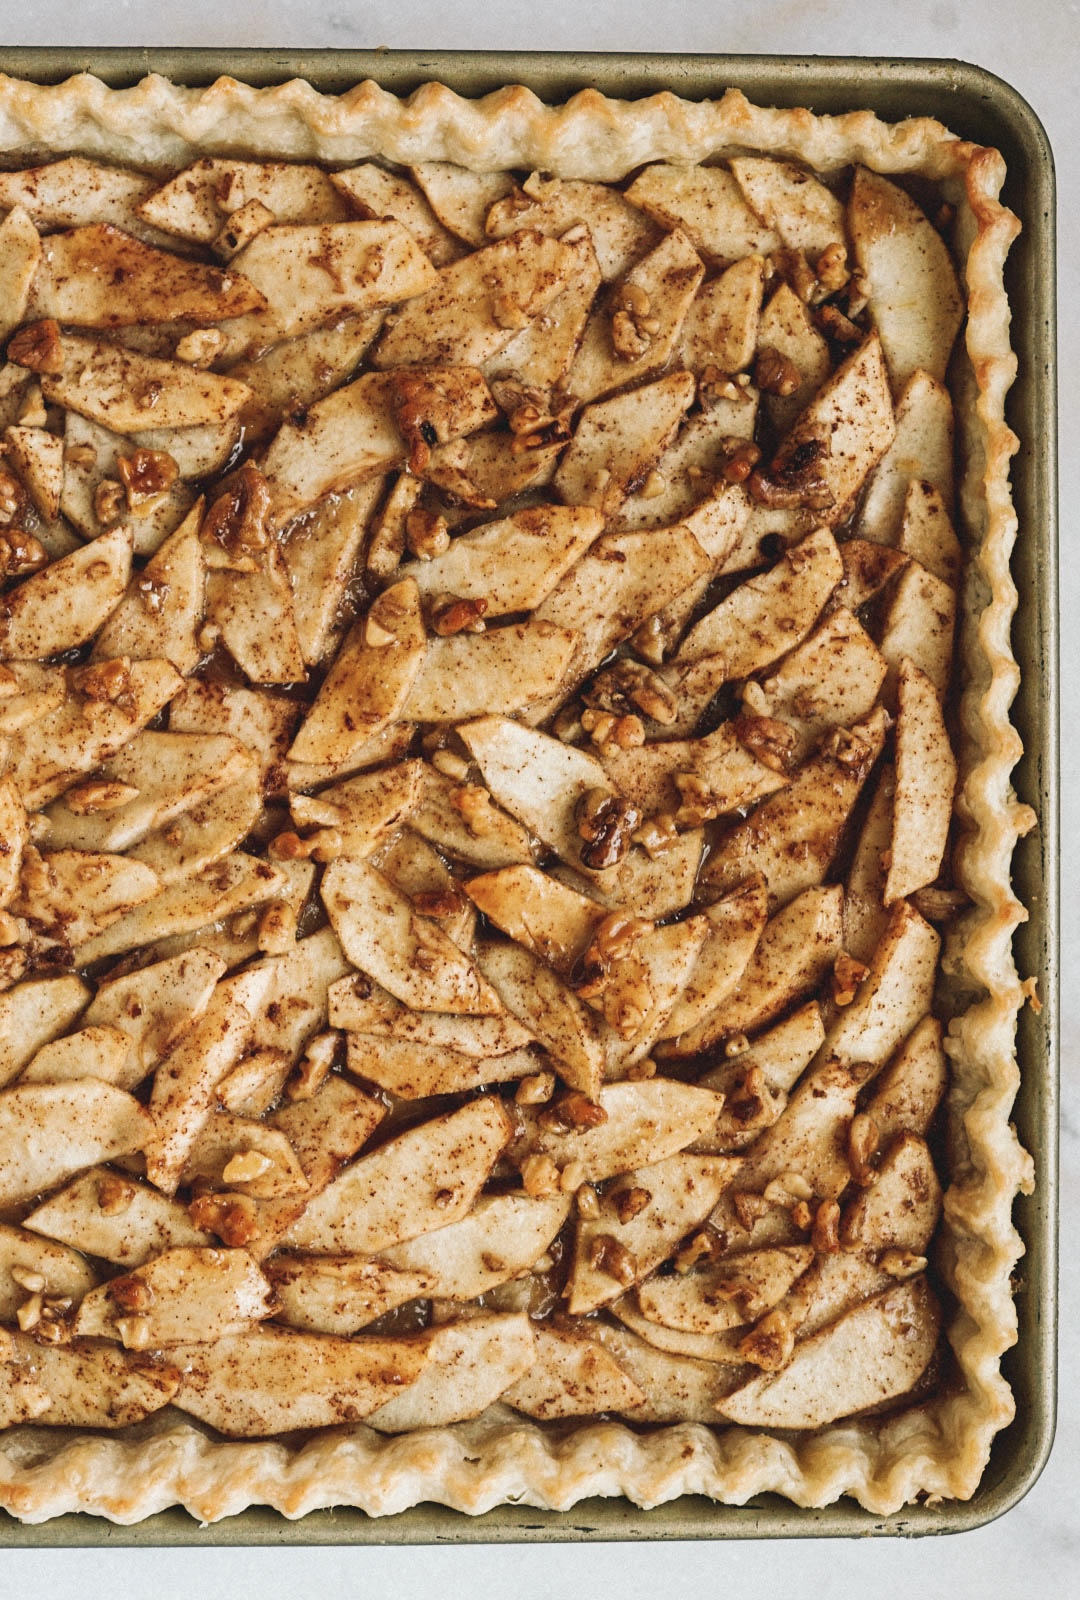 caramel apple slab pie with walnuts and caramel on top in gold baking sheet on marble counter